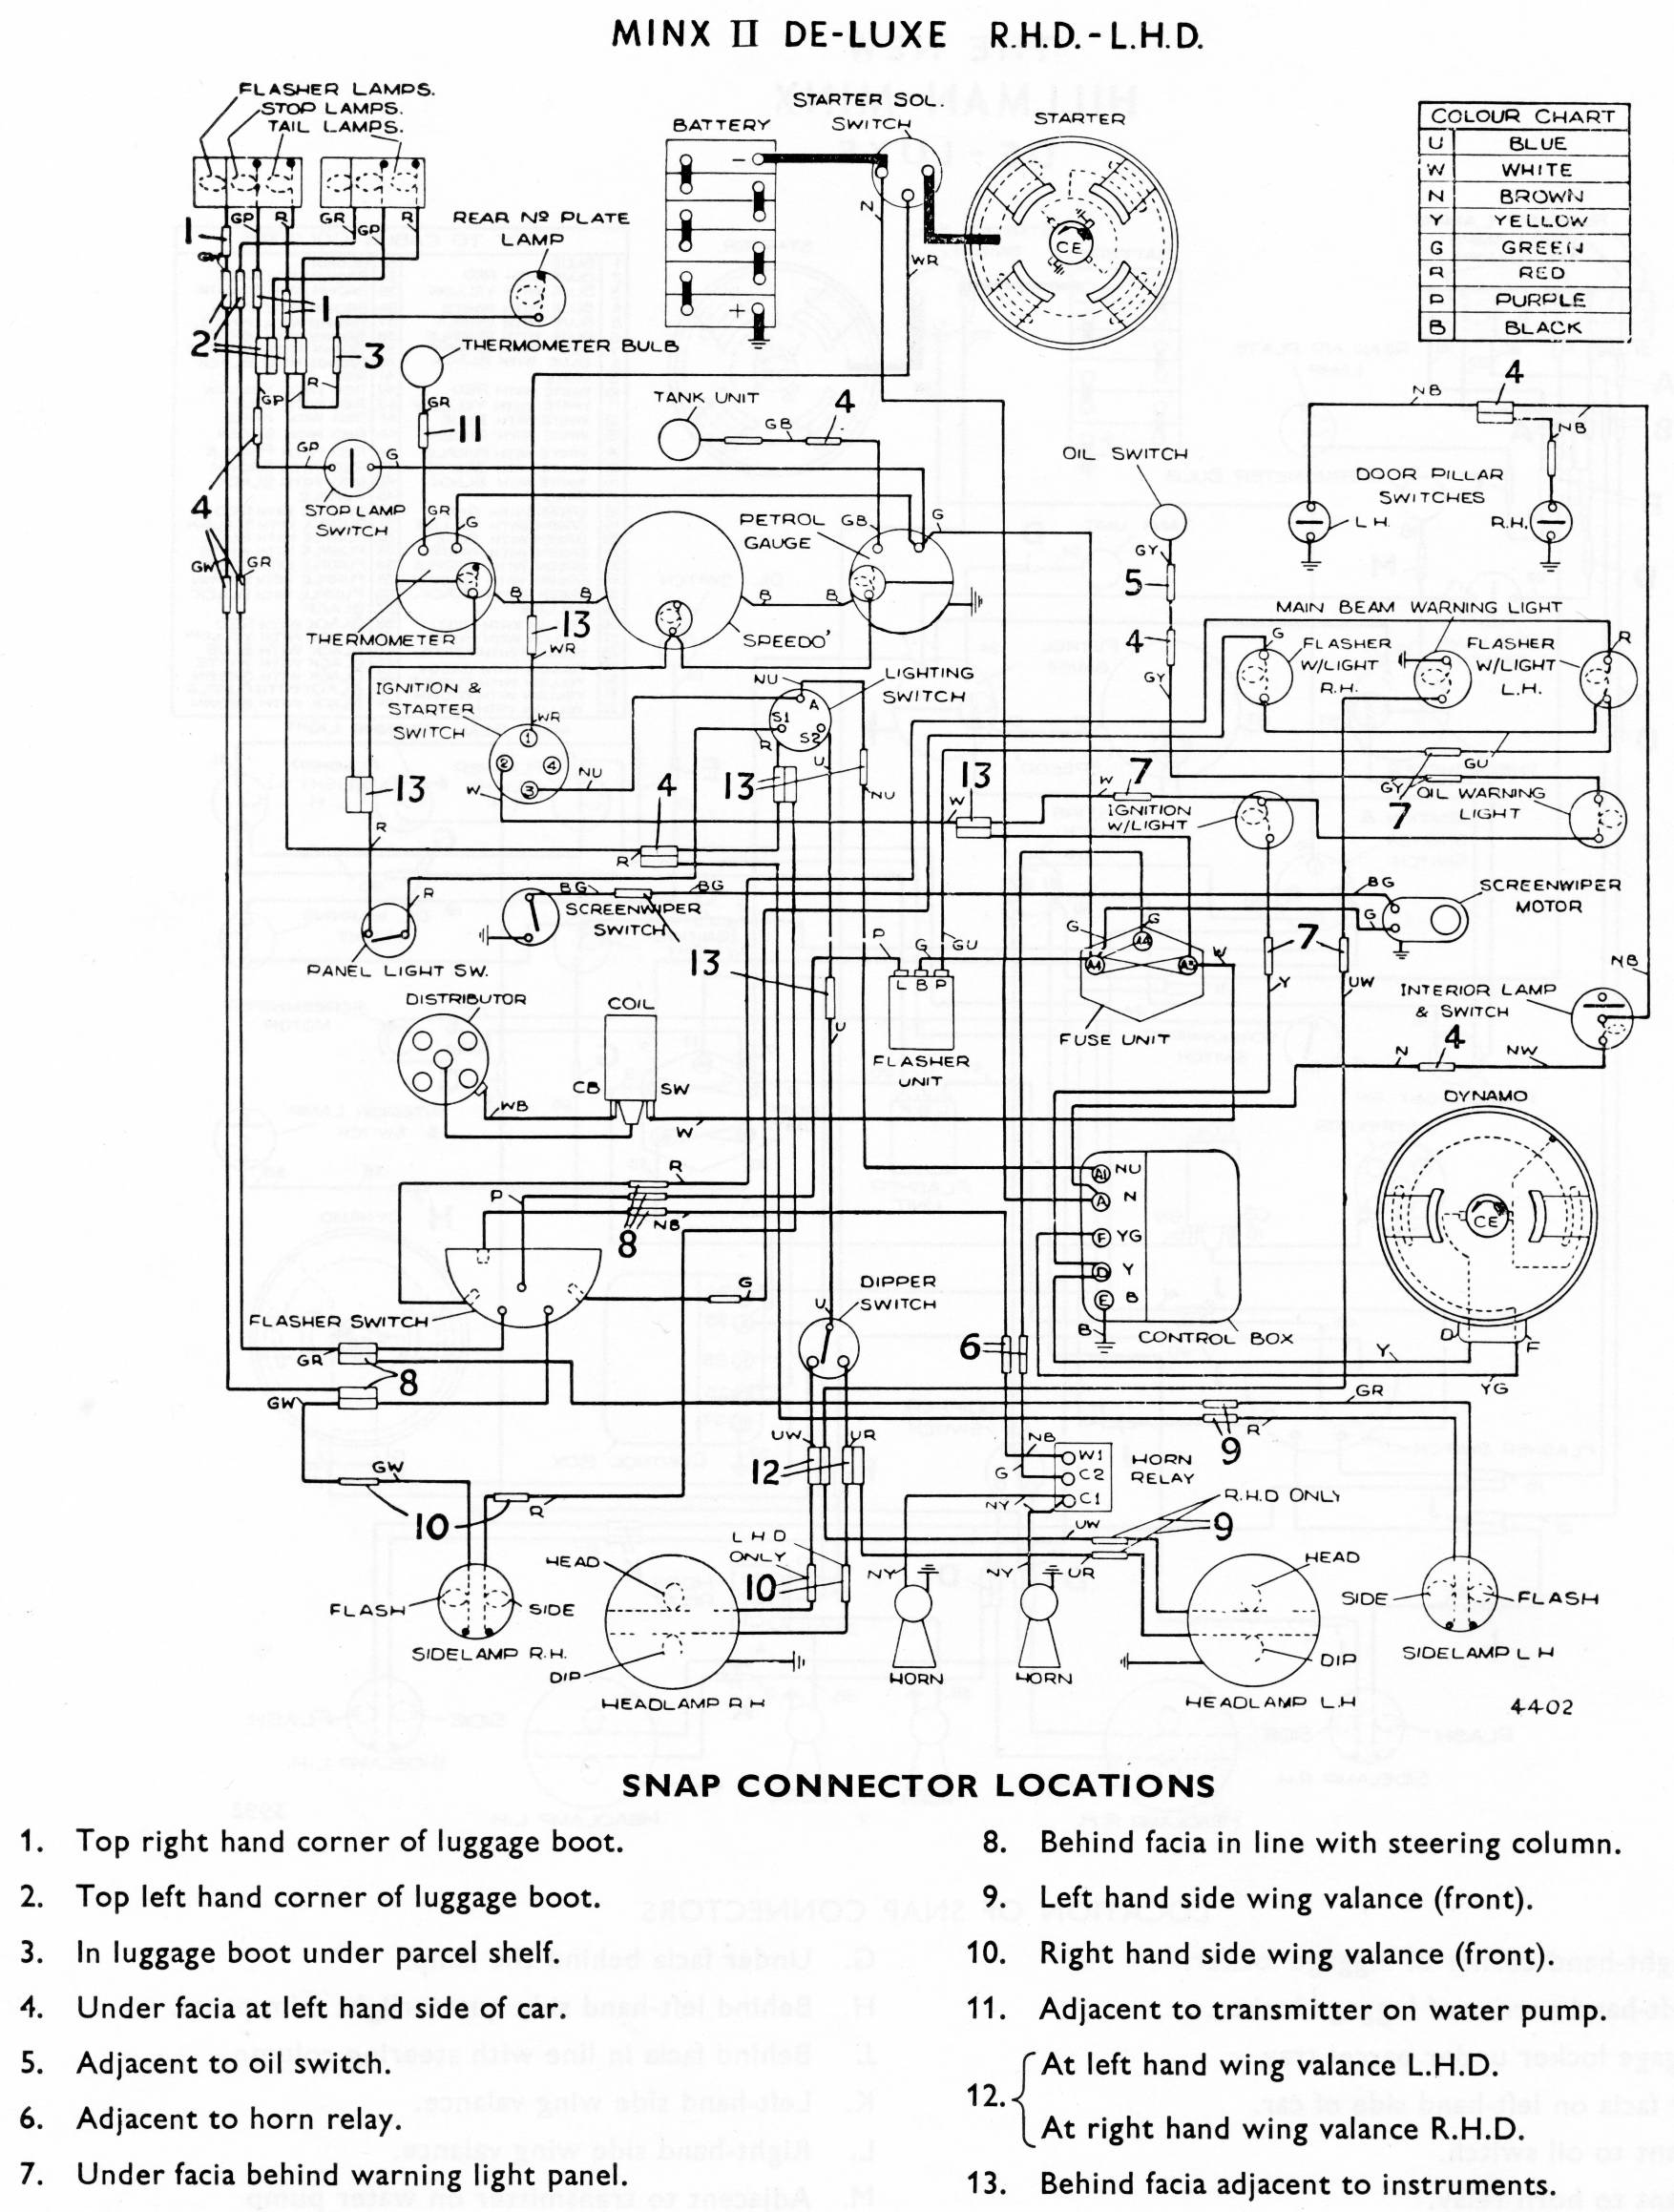 Amazing morris minor wiring diagram pictures inspiration simple